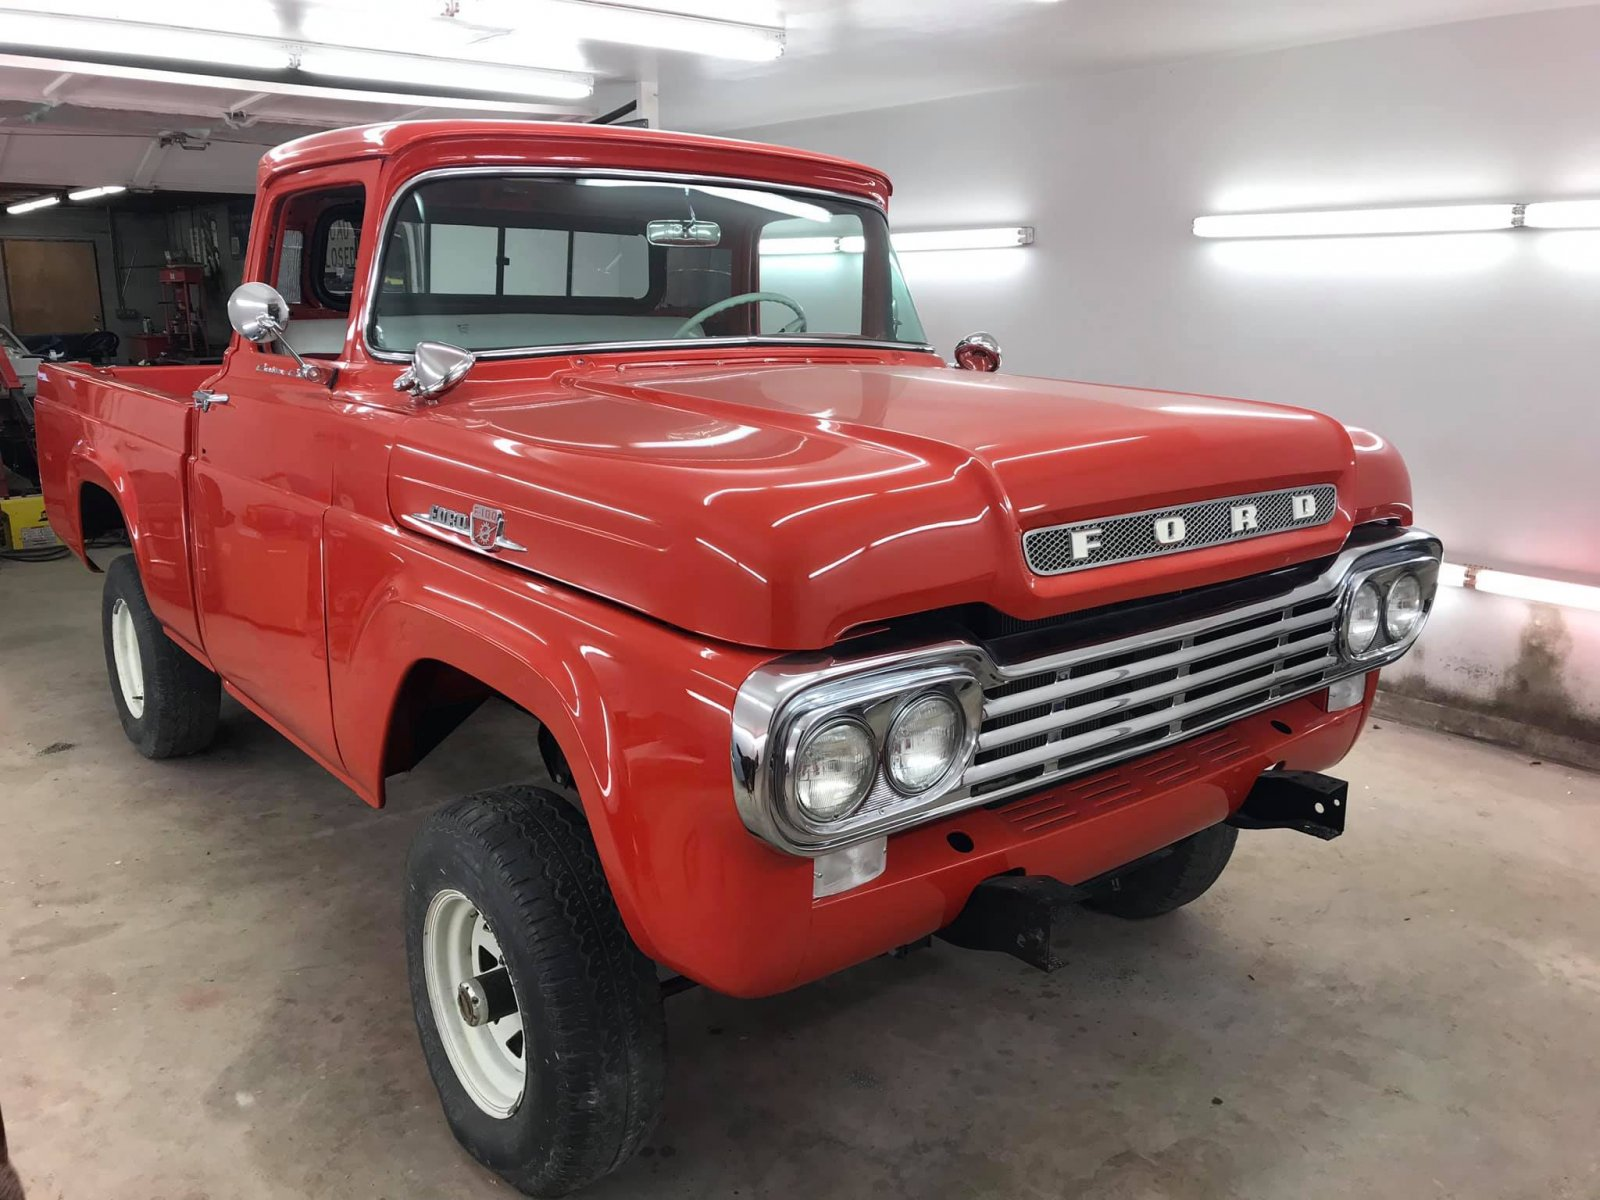 1959 Ford F100 4x4 Built From The Ground Up 6.jpg